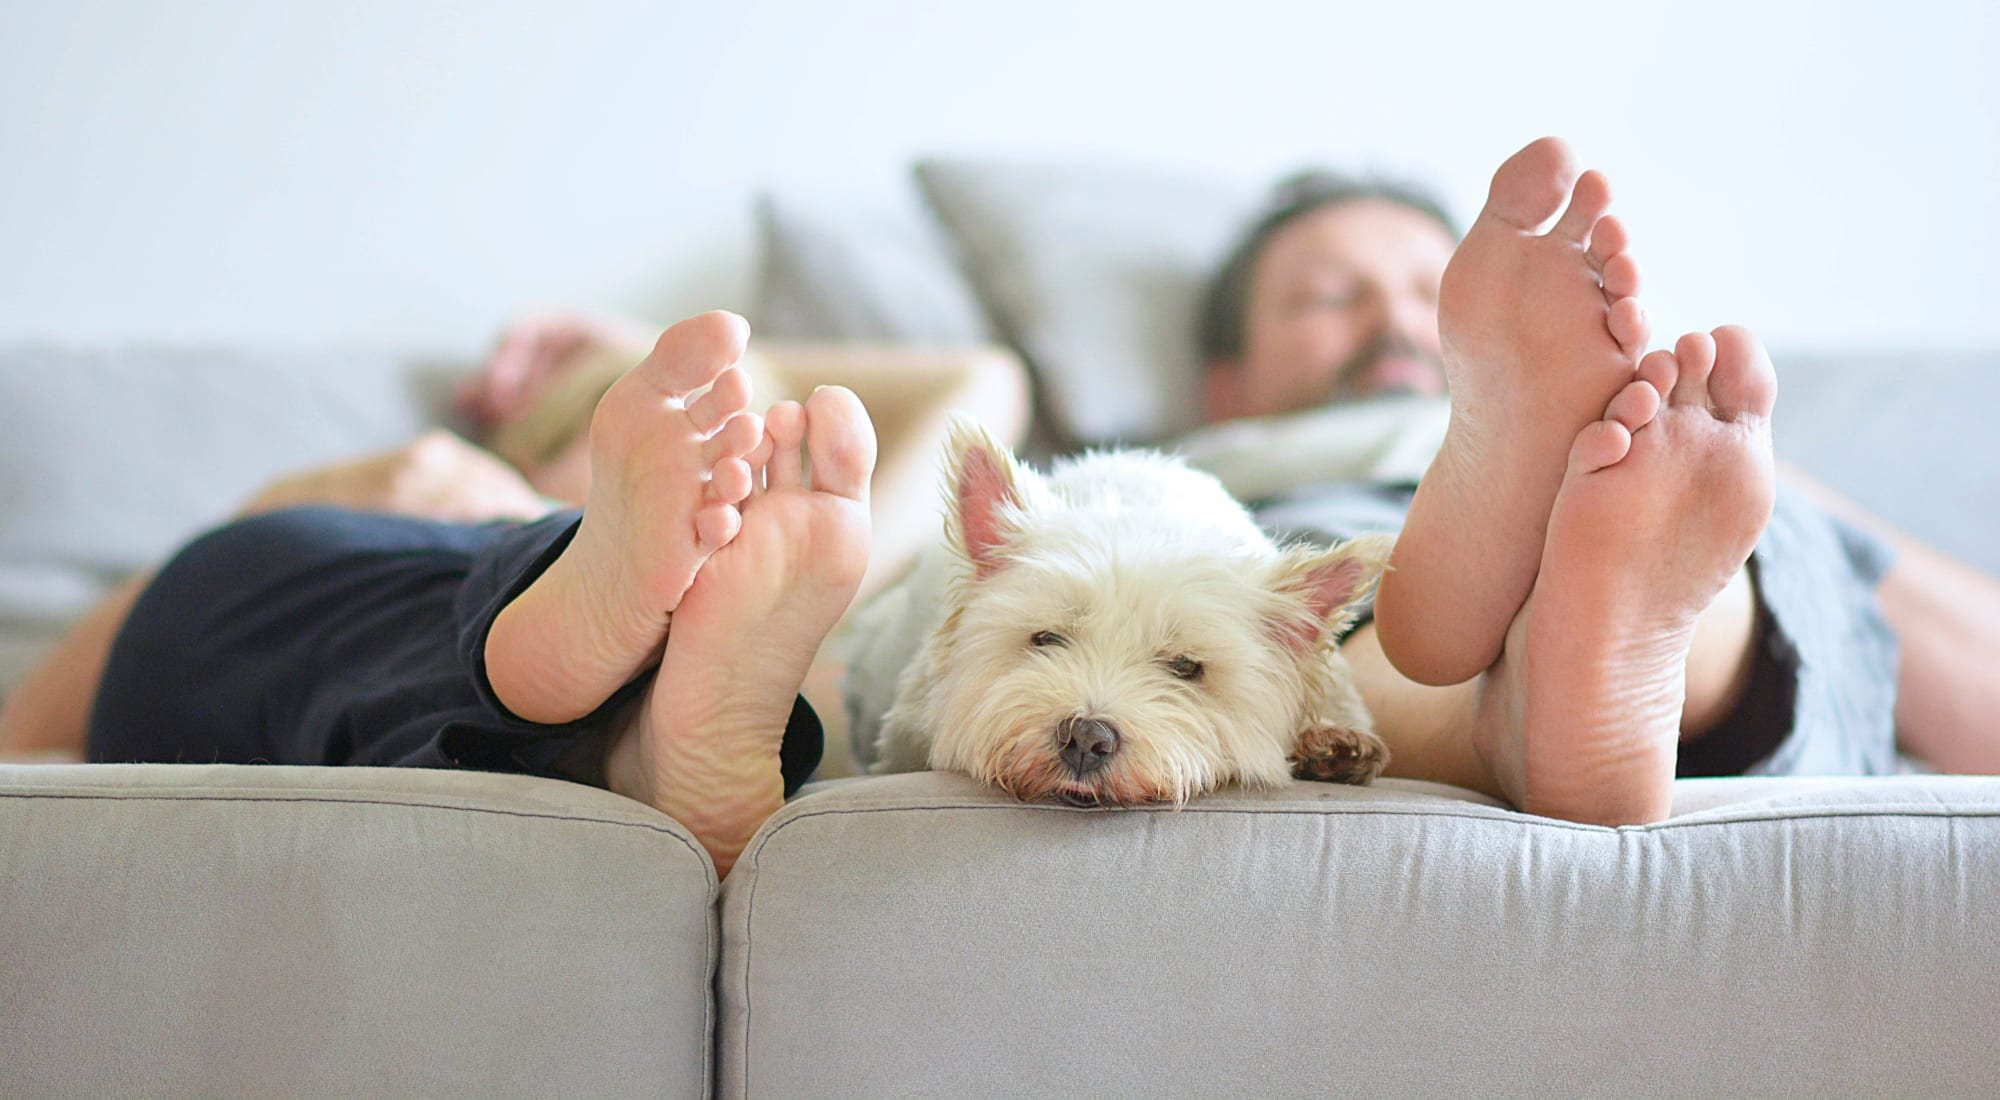 Pet-friendly apartments at The Manors in Pomona, New York